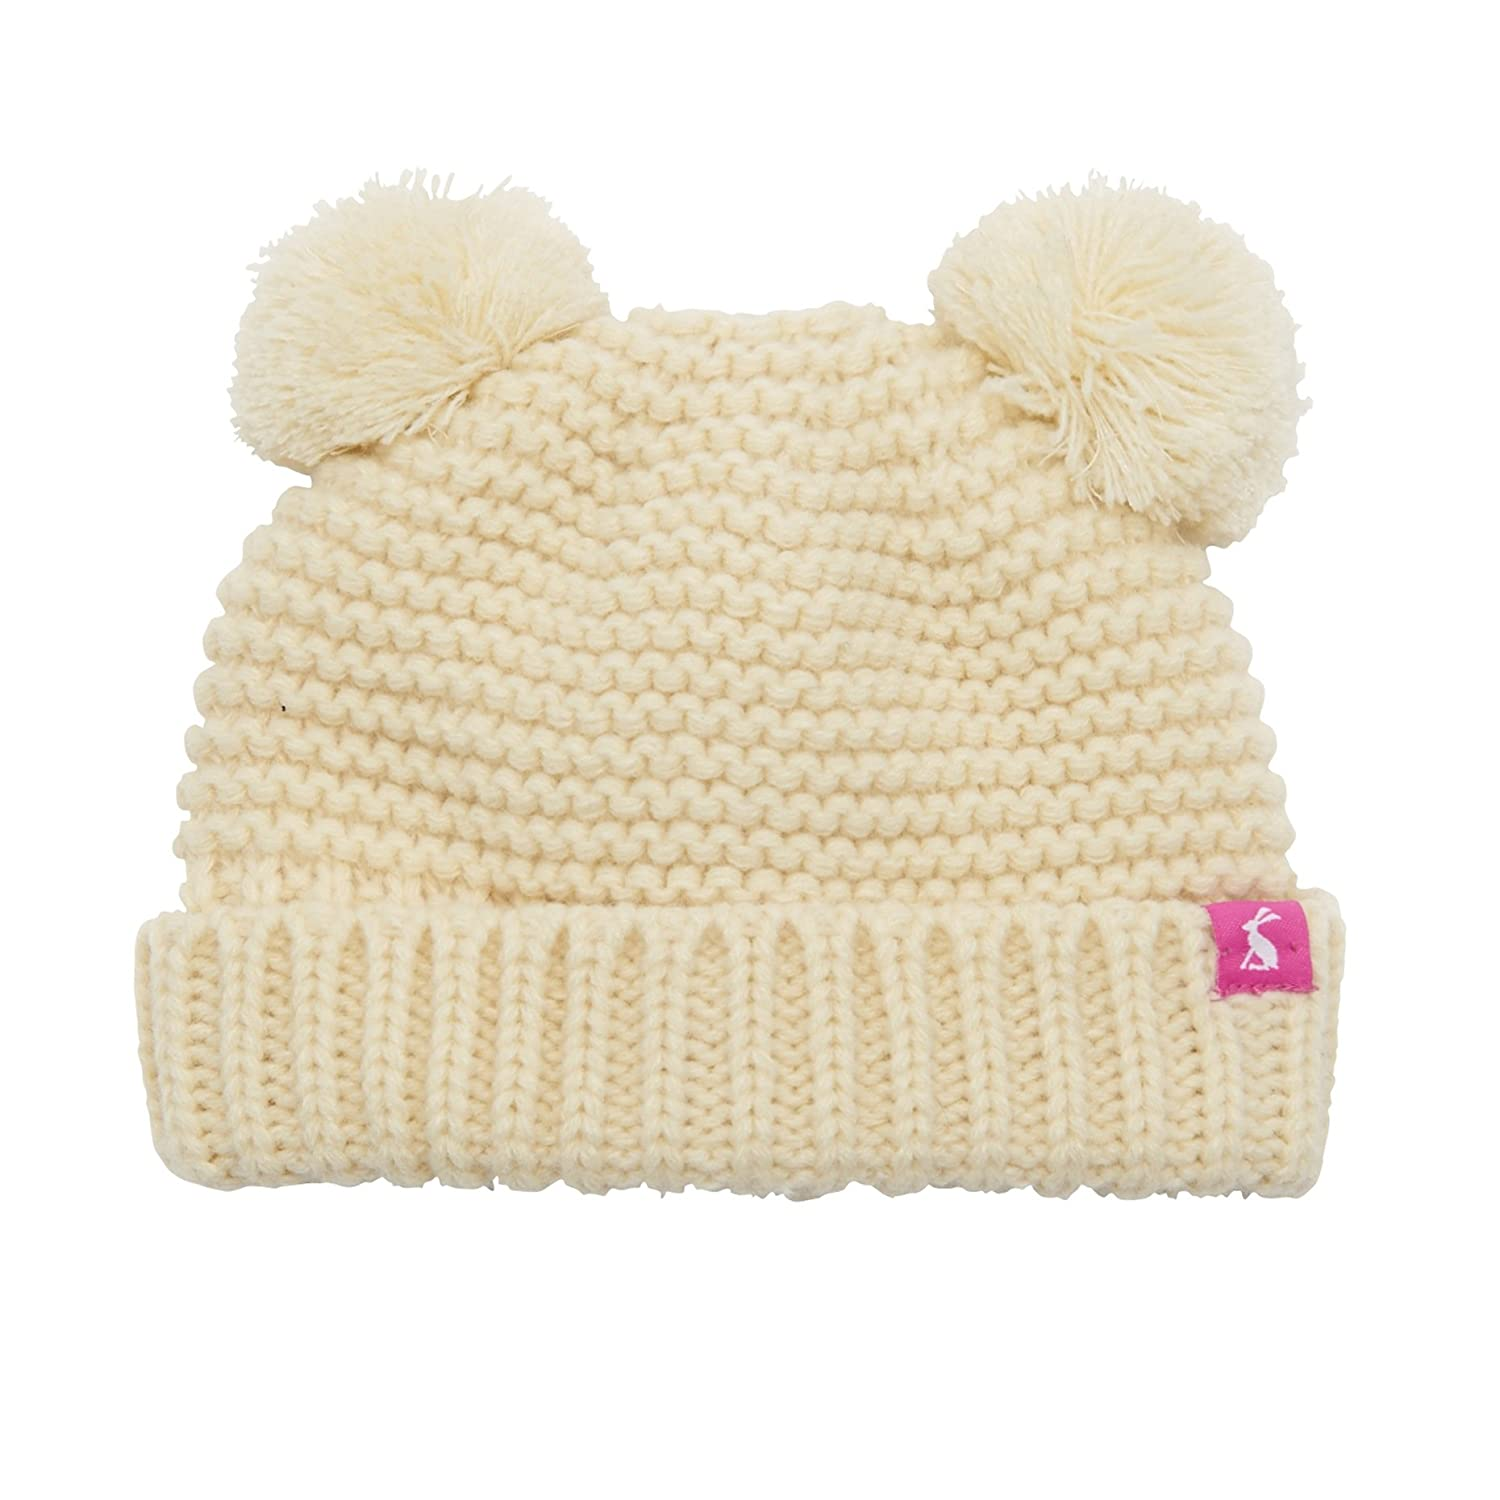 Joules Baby Pom Pom Hat in Cream-Small  Amazon.co.uk  Baby 034d6669203